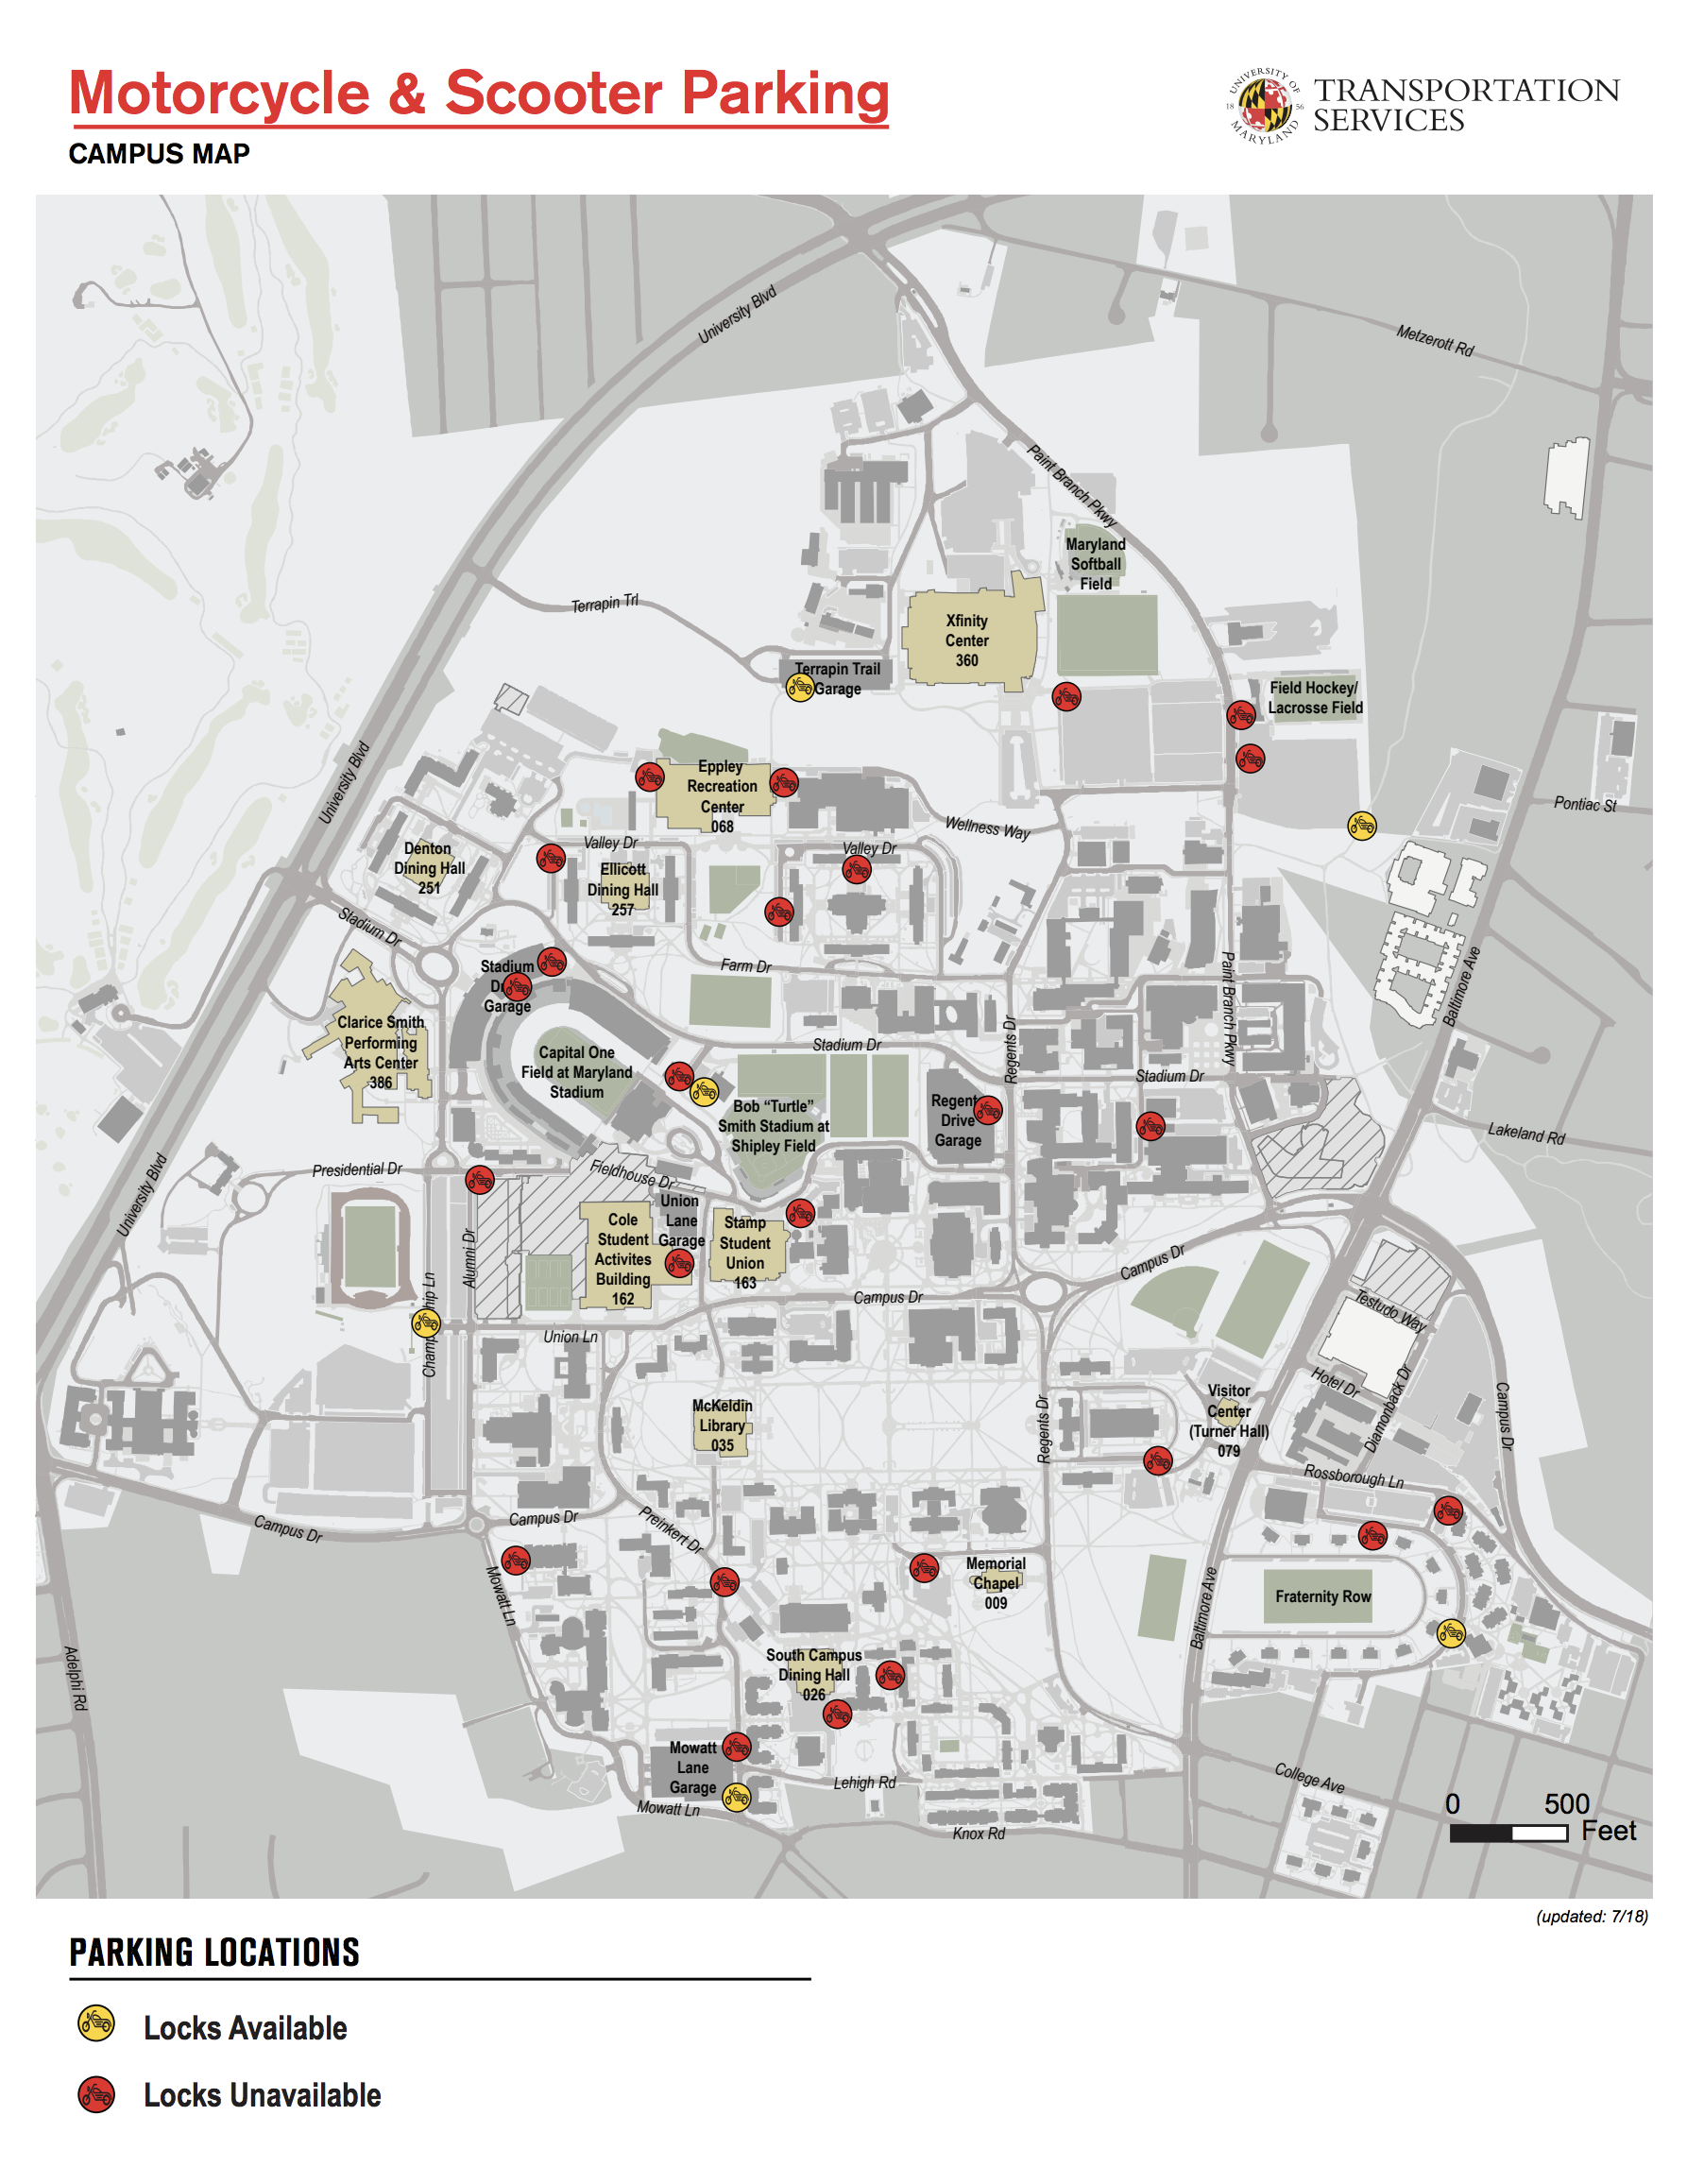 umd map of campus Motorcycle Scooter Parking Map Umd Dots umd map of campus